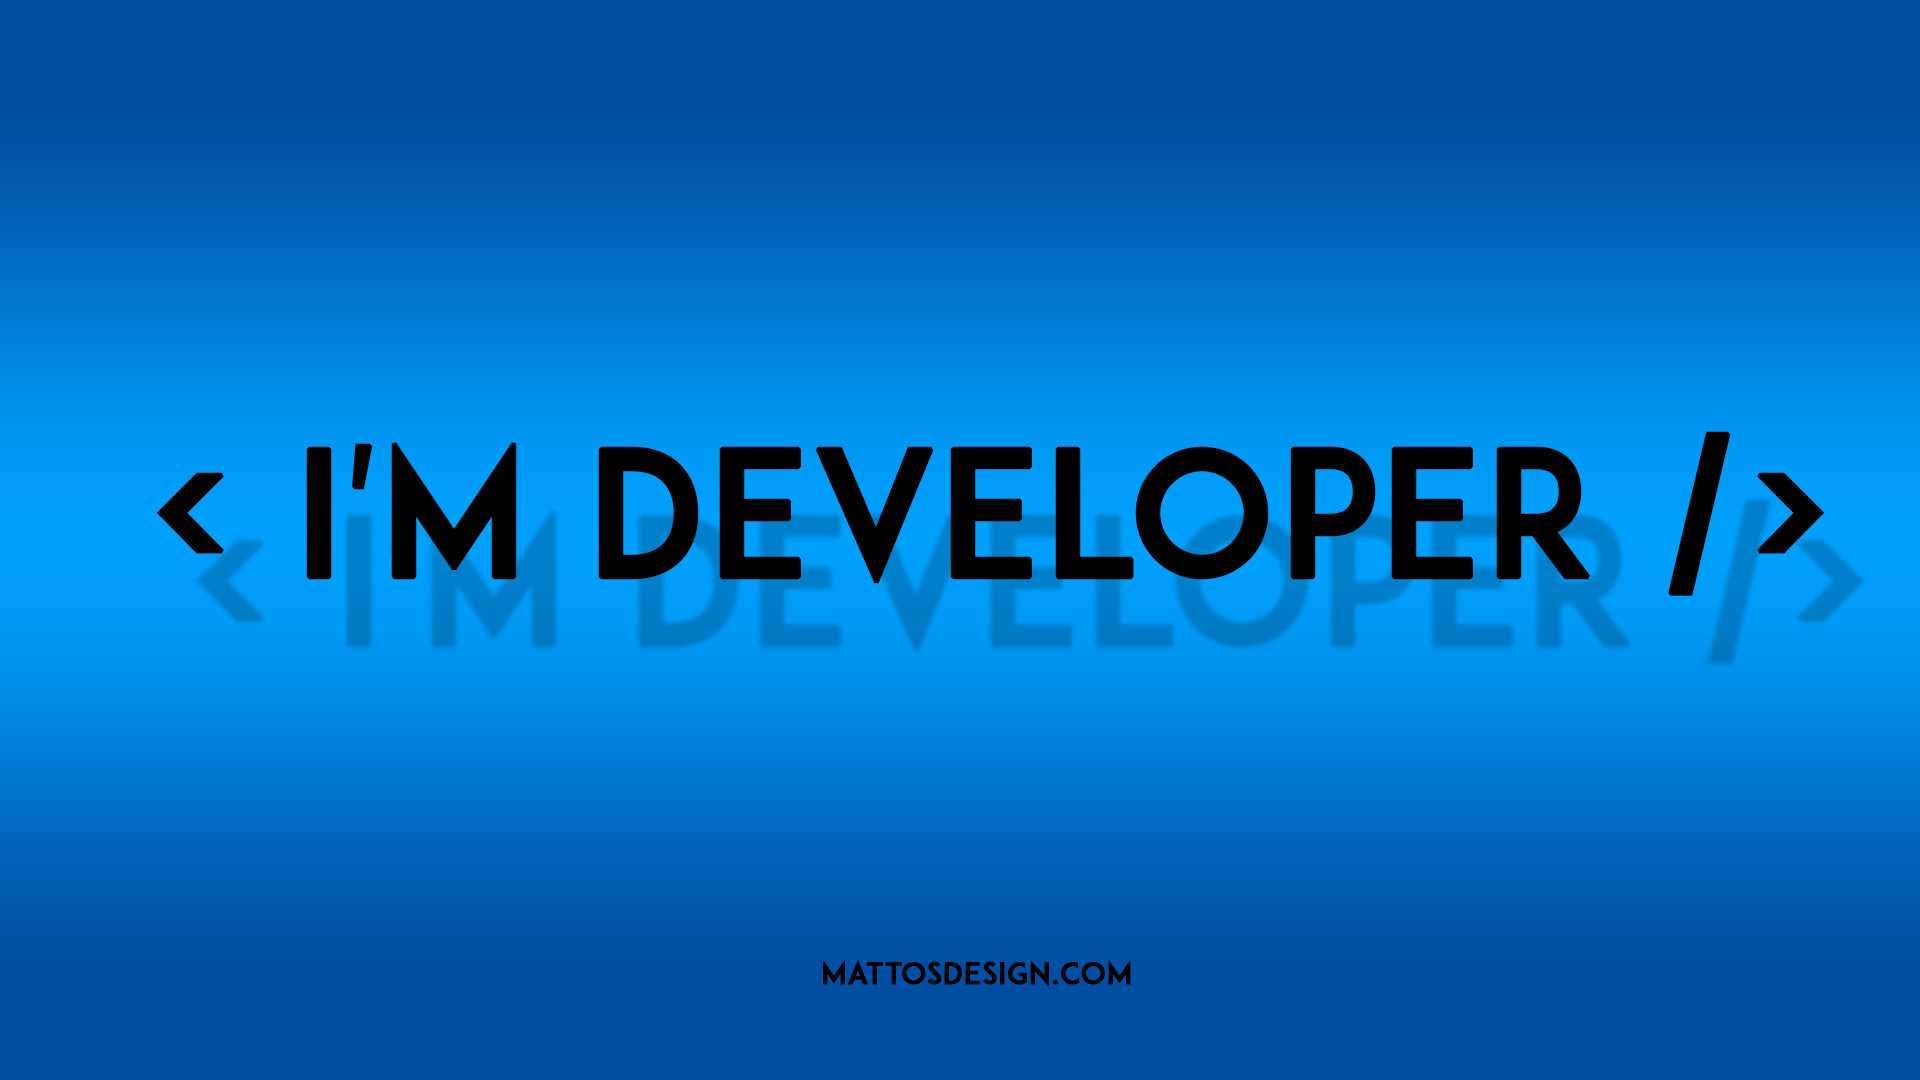 Cool Quote Wallpapers Hd 1920x1080 Web Developer Wallpaper 84 Images